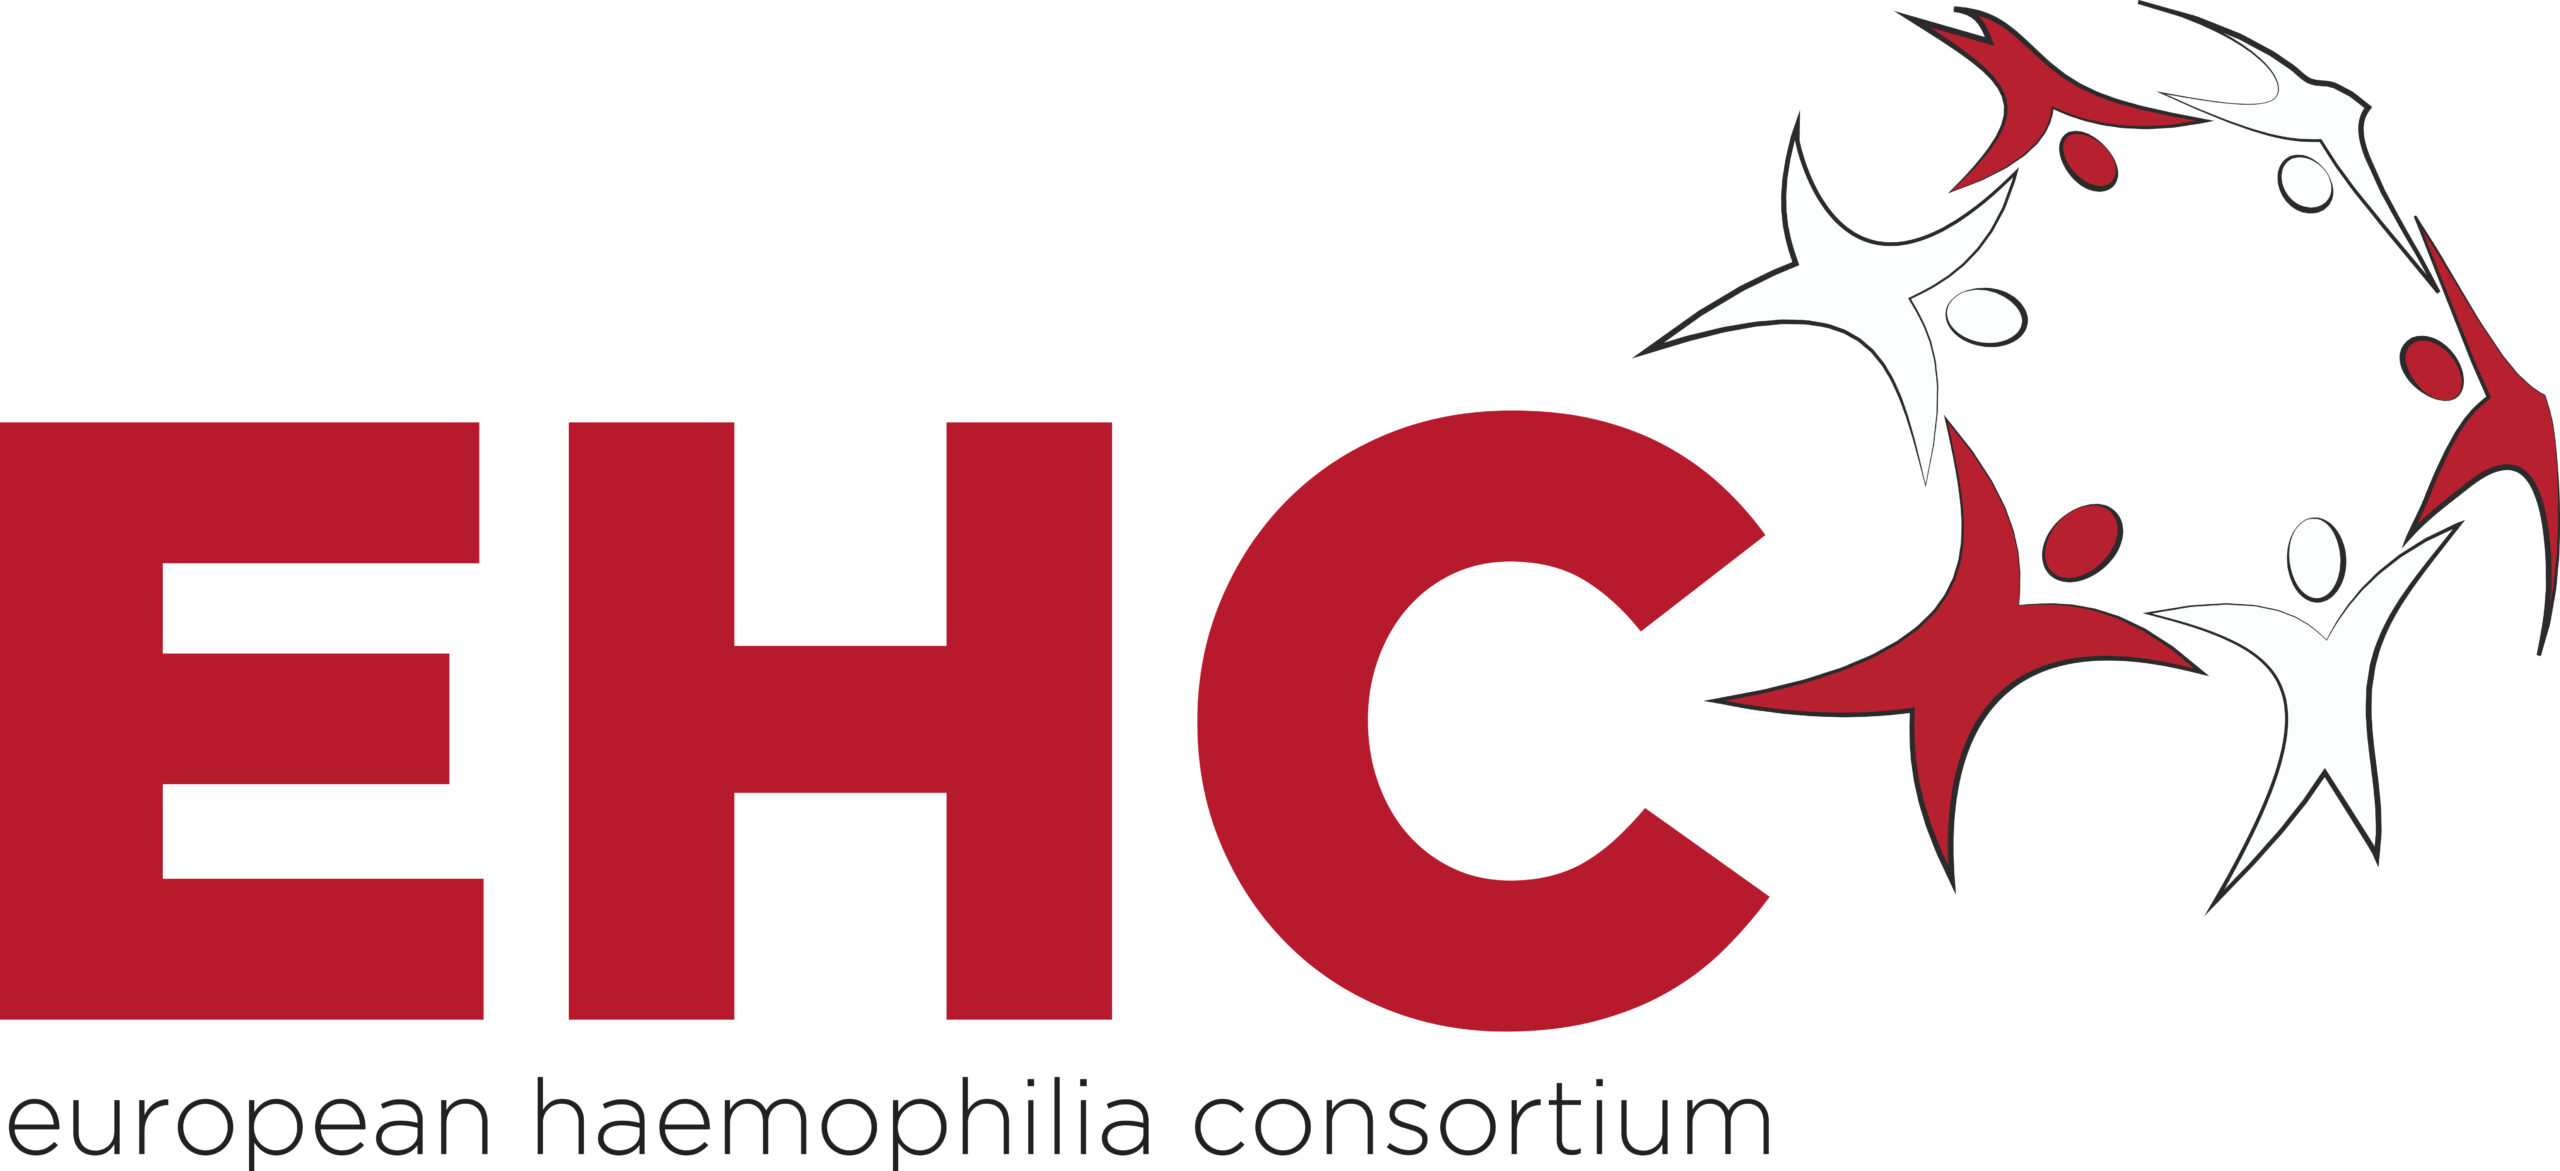 EHC — European Haemophilia Consortium -  - /ru/document/ehc-publishes-its-2017-annual-report/